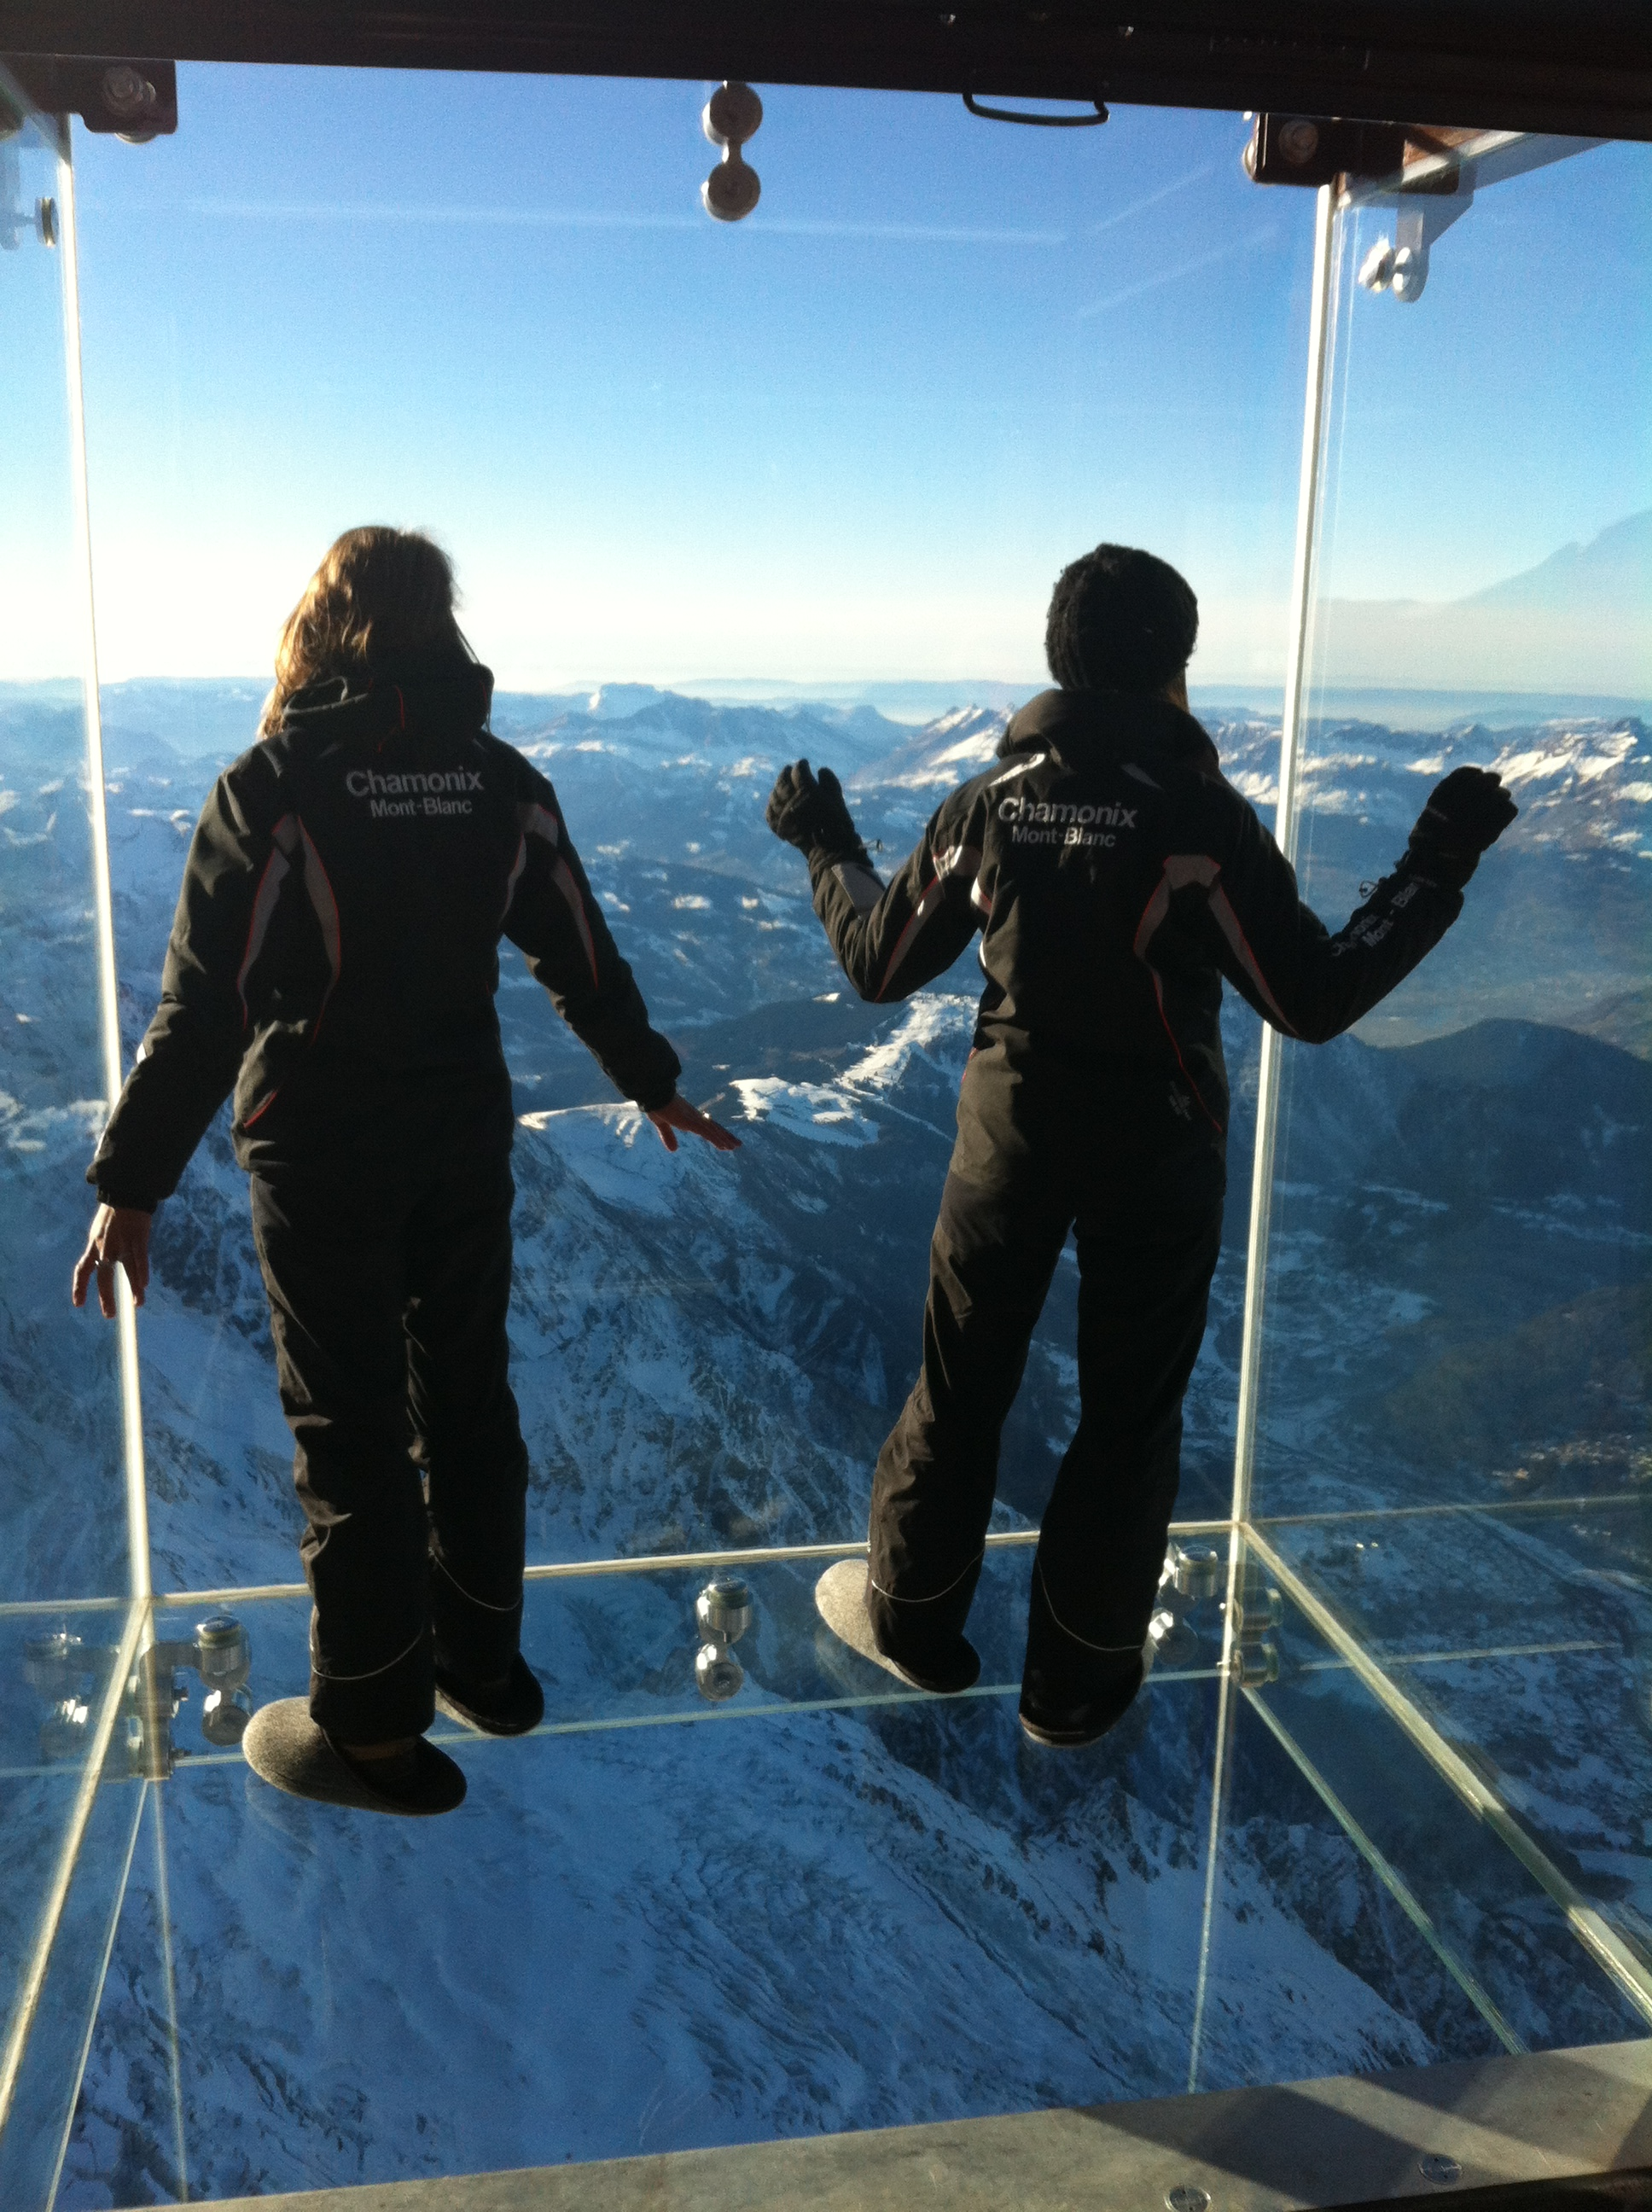 Visitors can see Mont-Blanc from the viewing box.